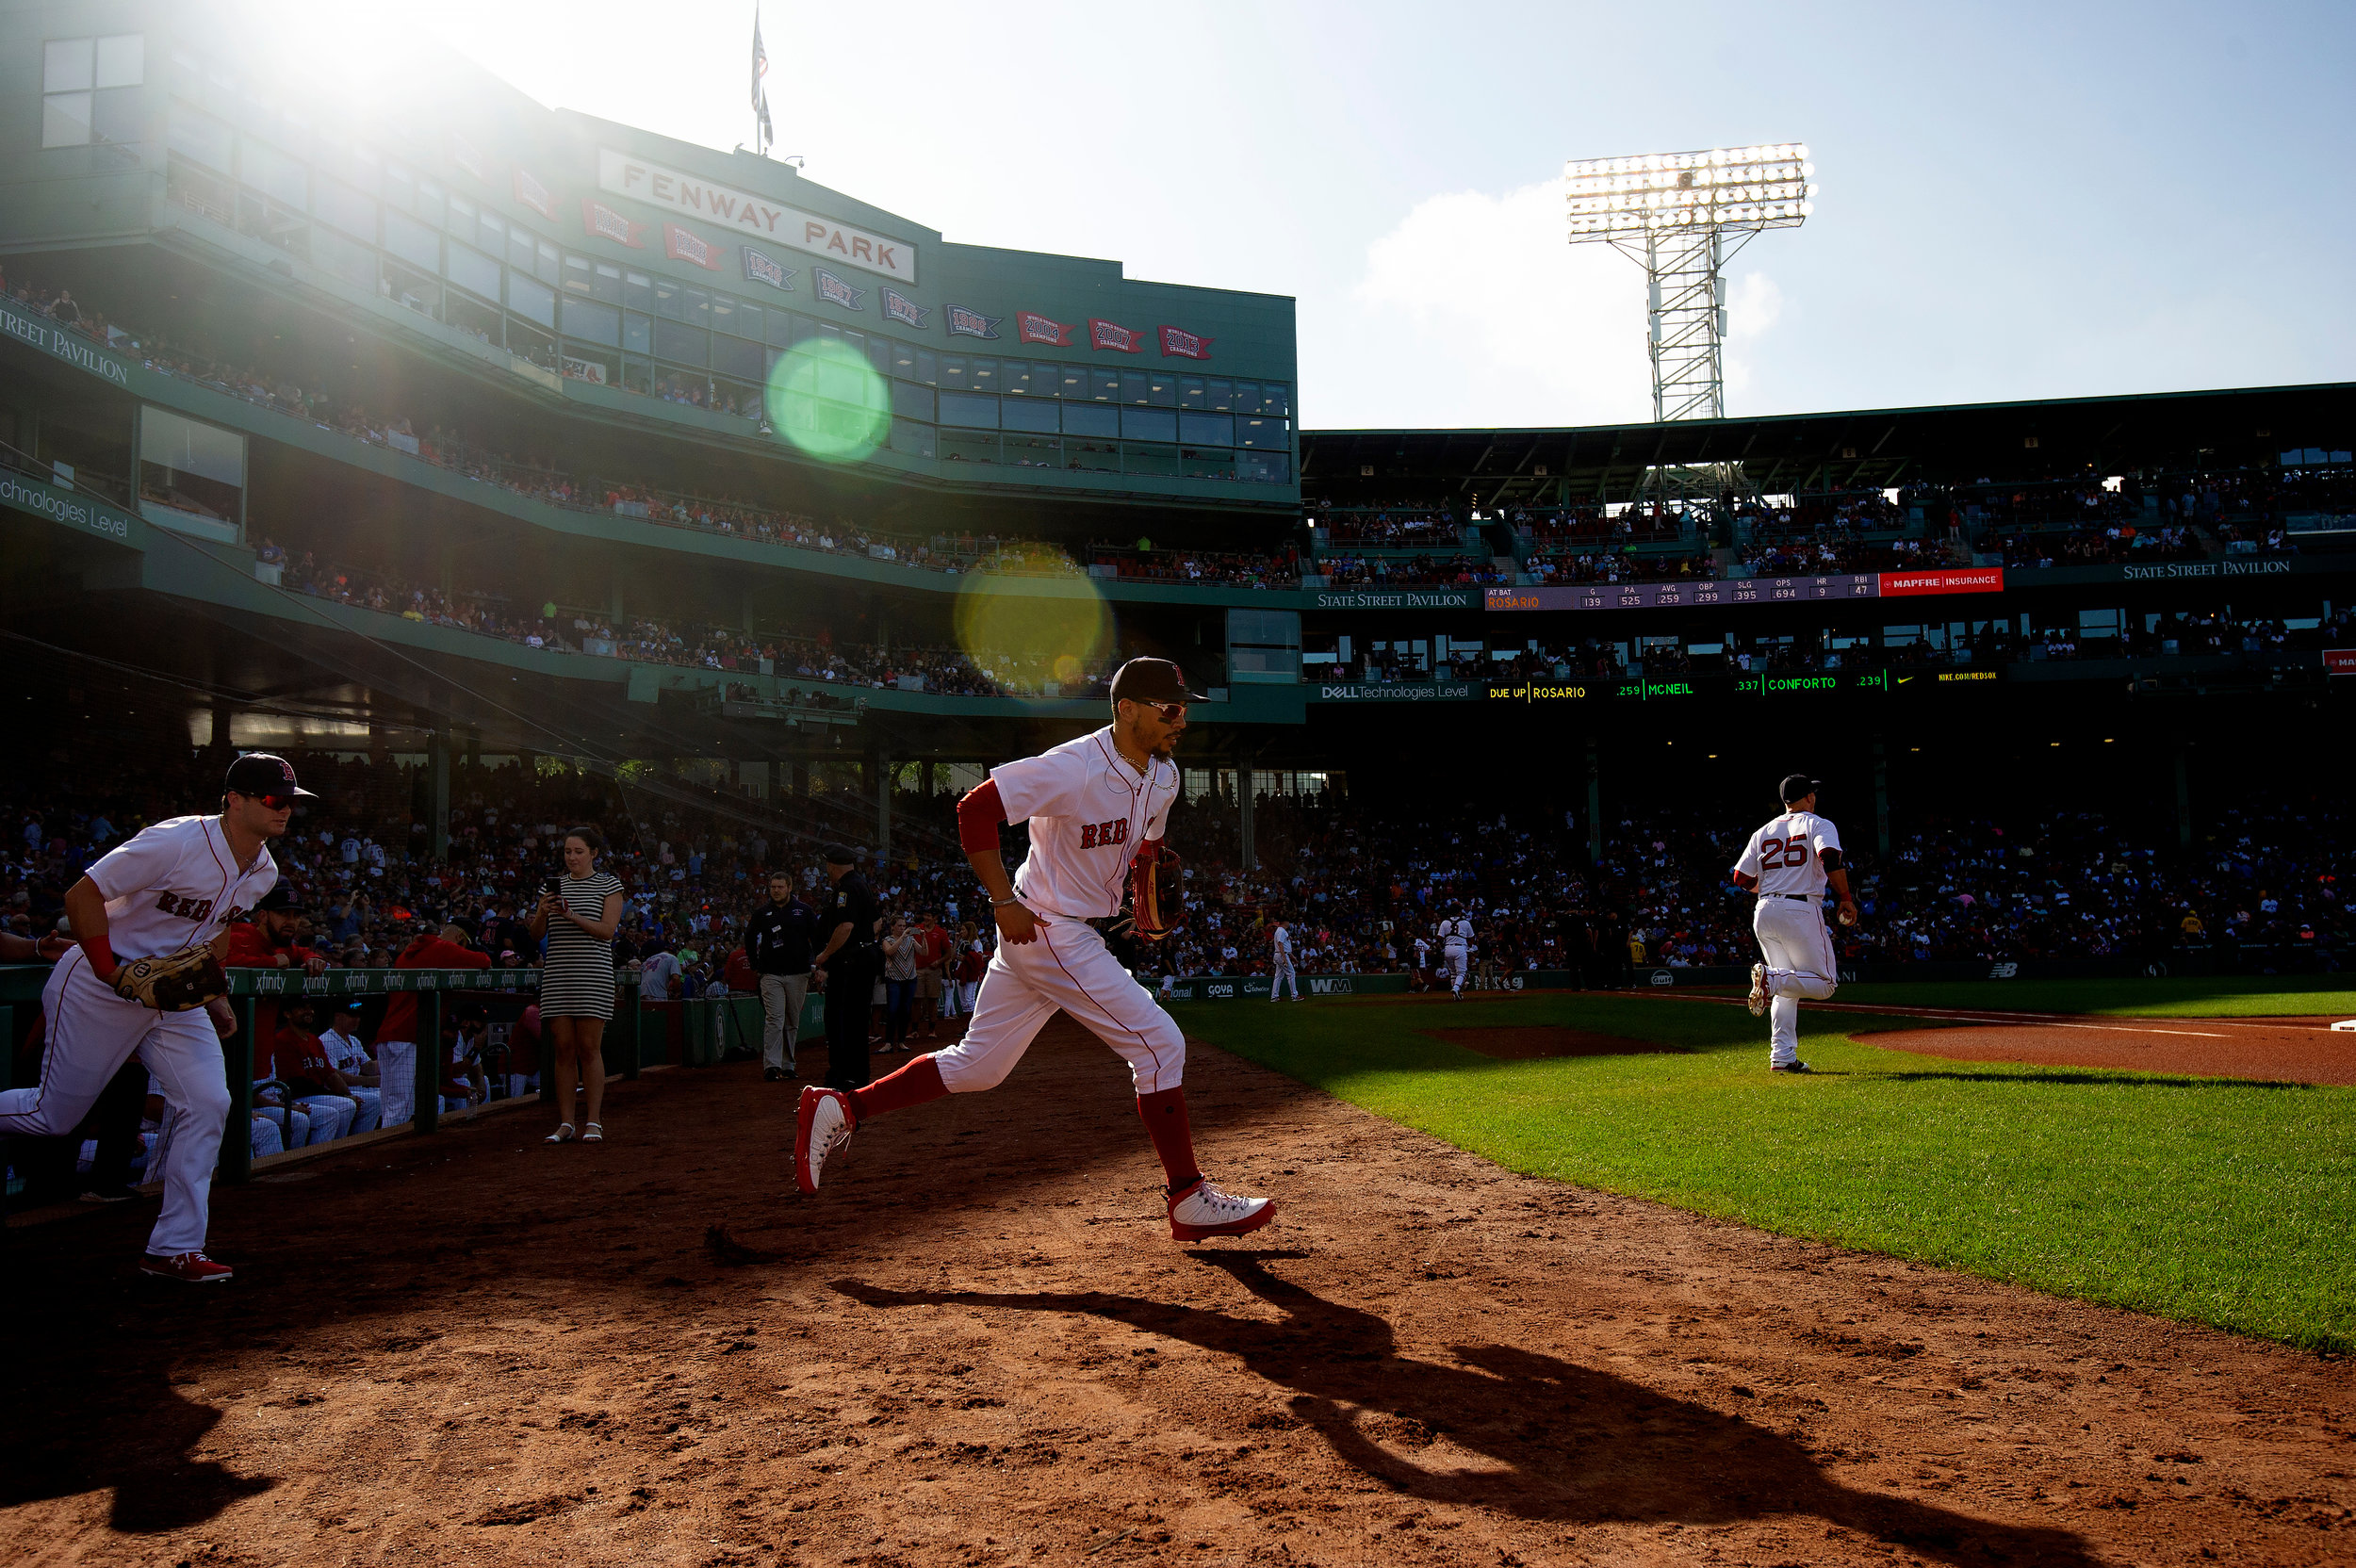 Boston Red Sox outfielder Mookie Betts runs onto the field at the start of the game against the New York Mets at Fenway Park in Boston, Massachusetts, on Saturday, September 15, 2018.